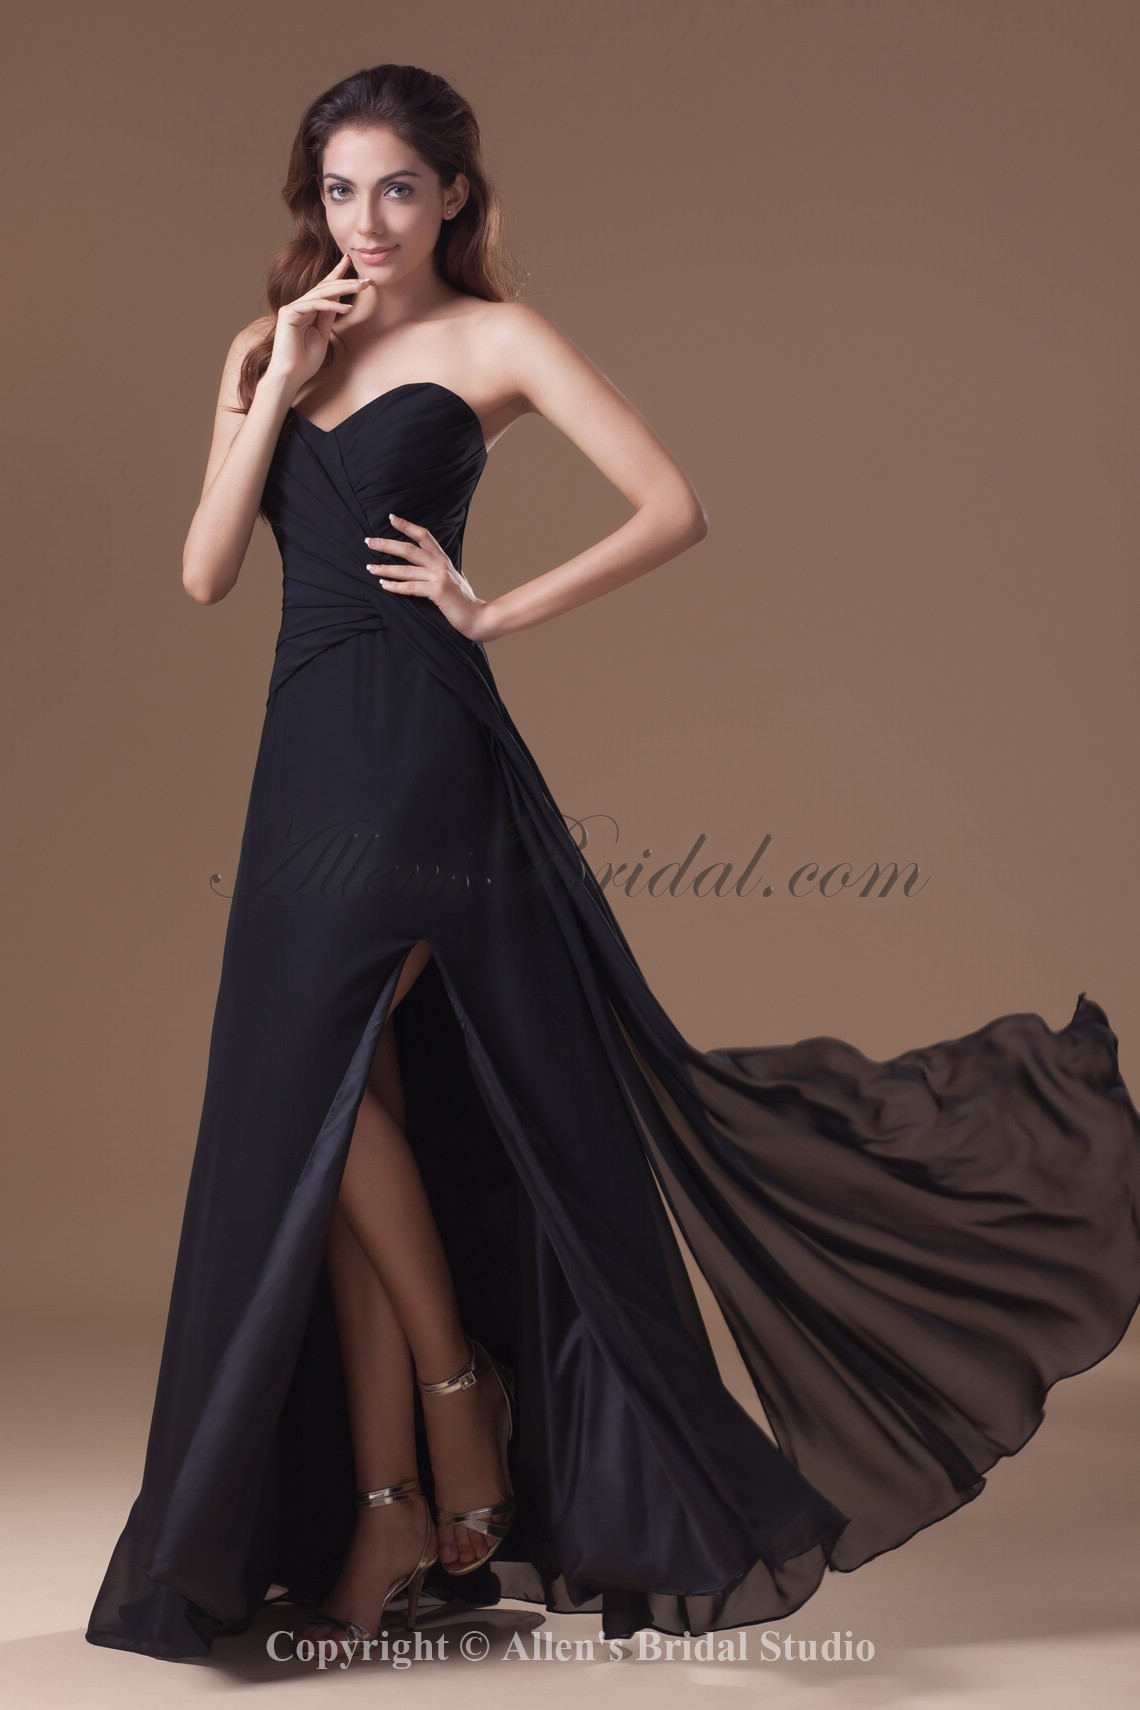 /602-4821/chiffon-sweetheart-neckline-floor-length-column-prom-dress.jpg